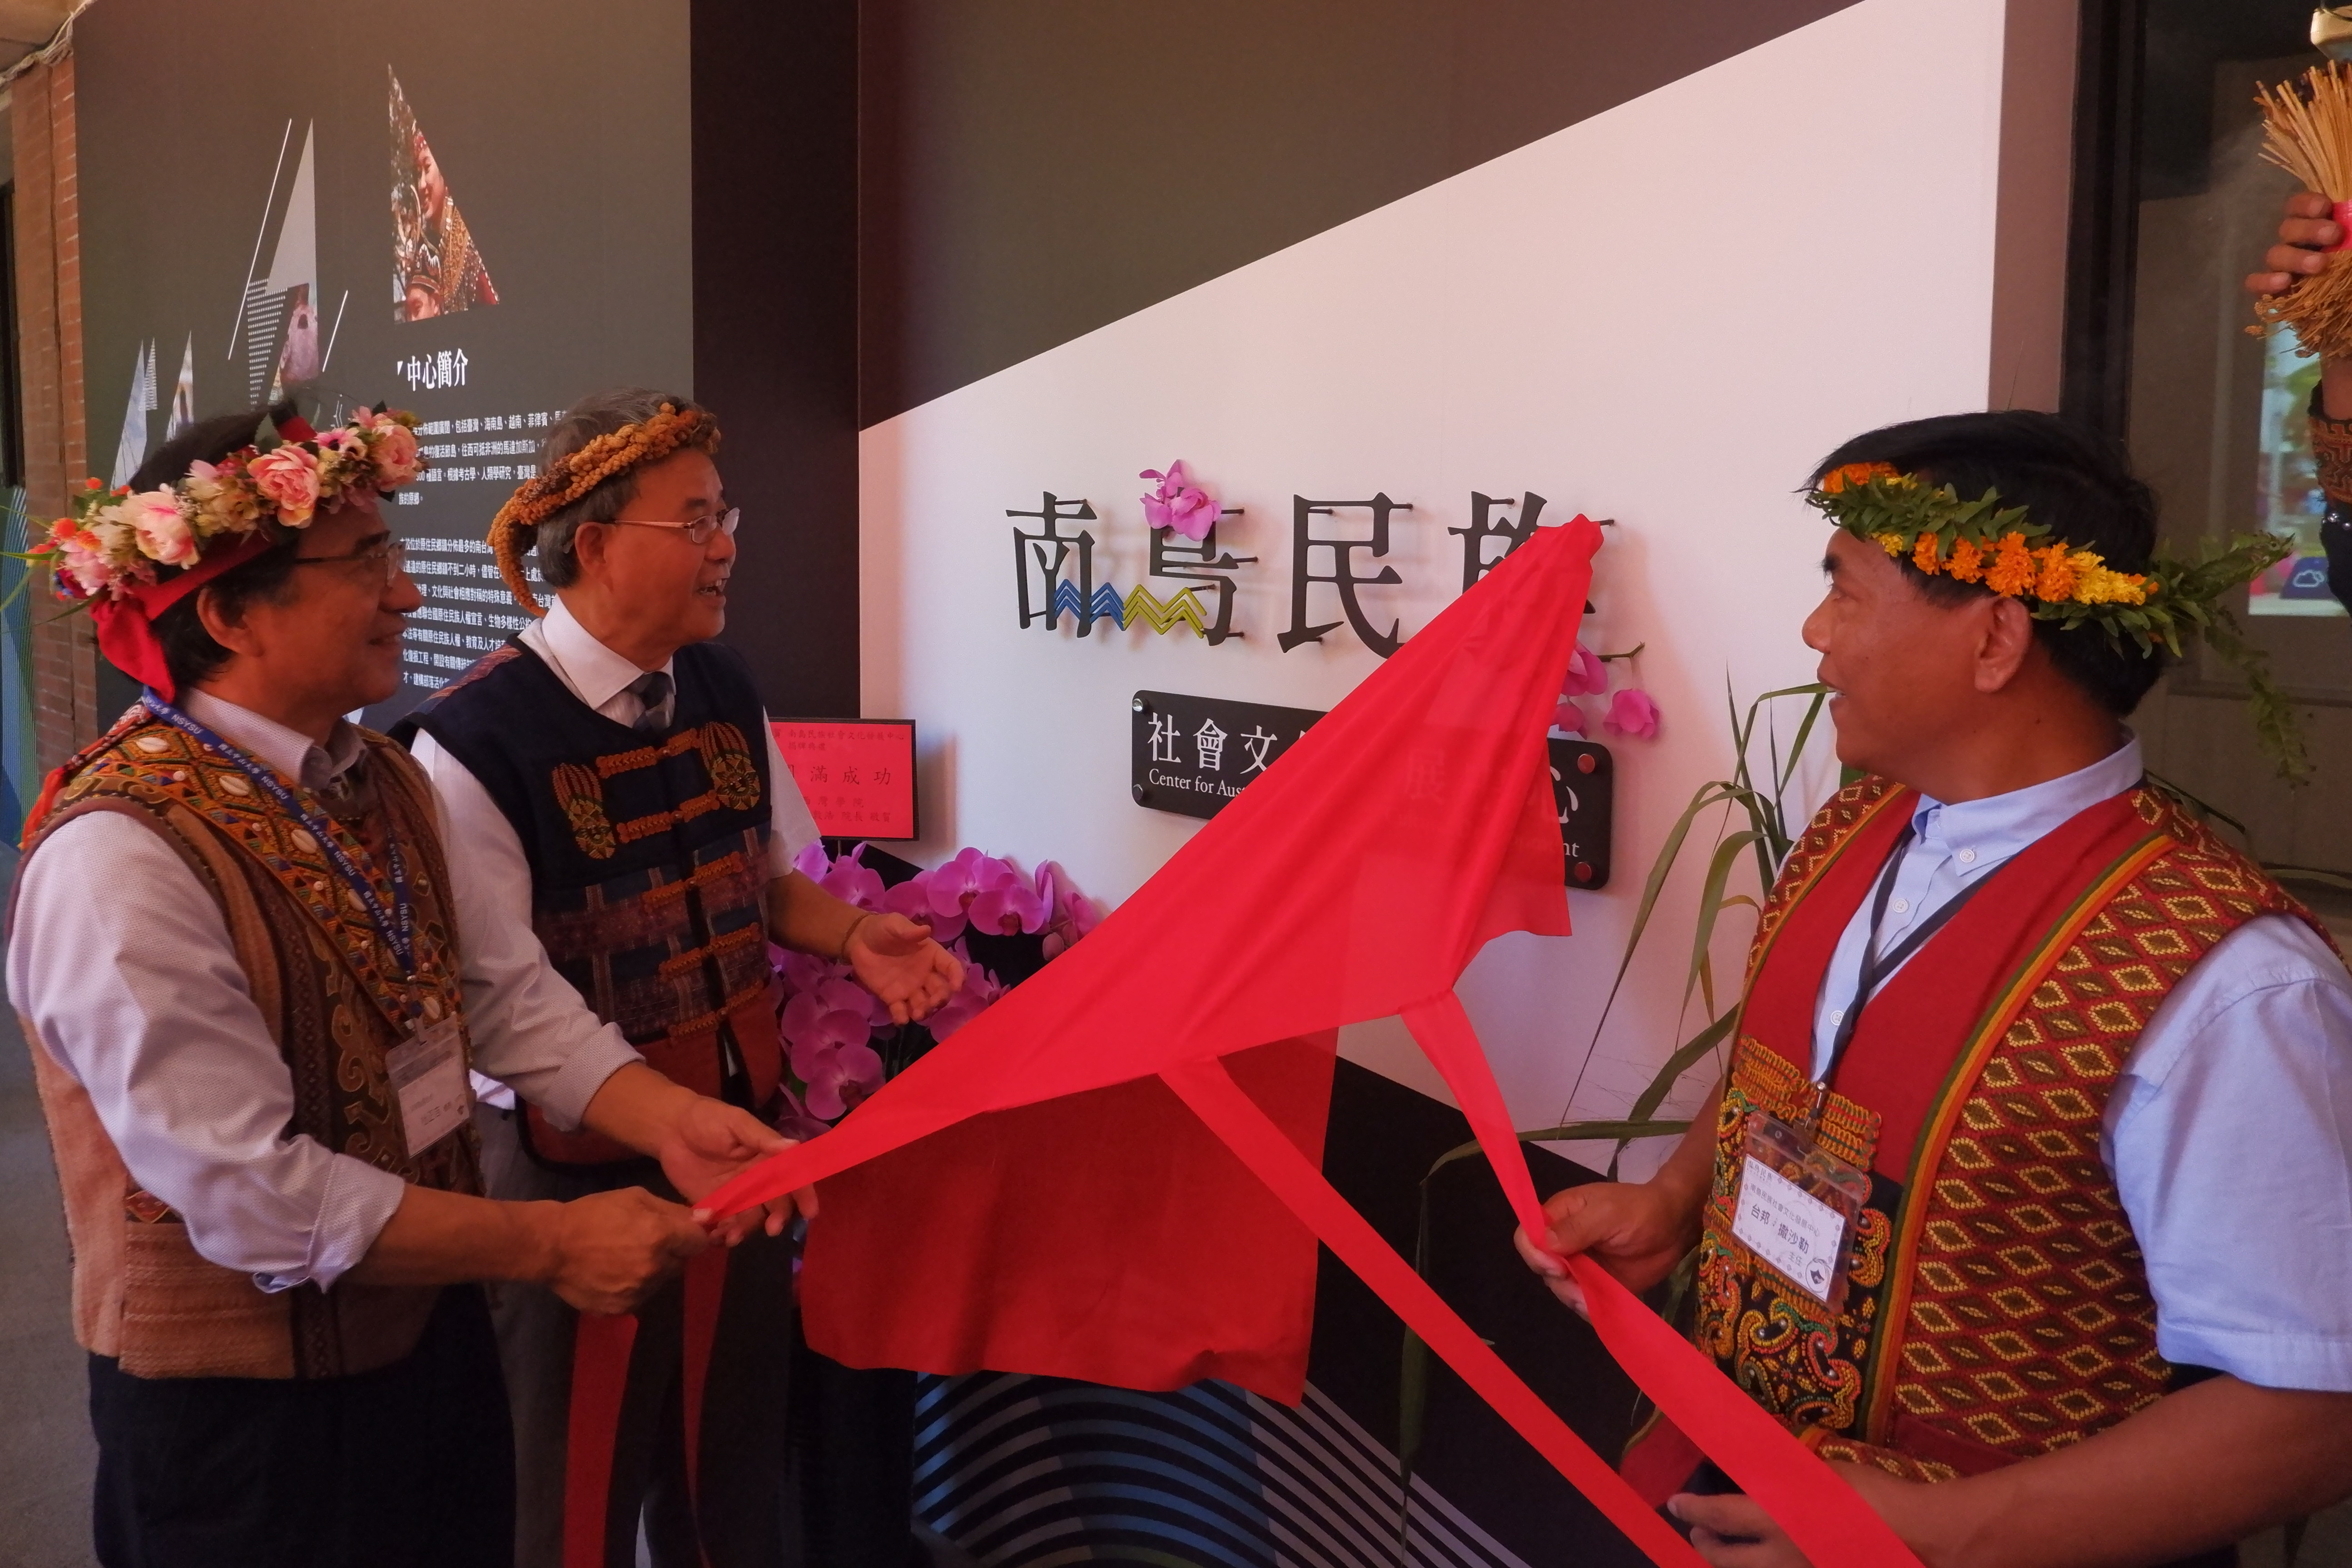 The new Center for Austronesia Social and Cultural Development is officially open